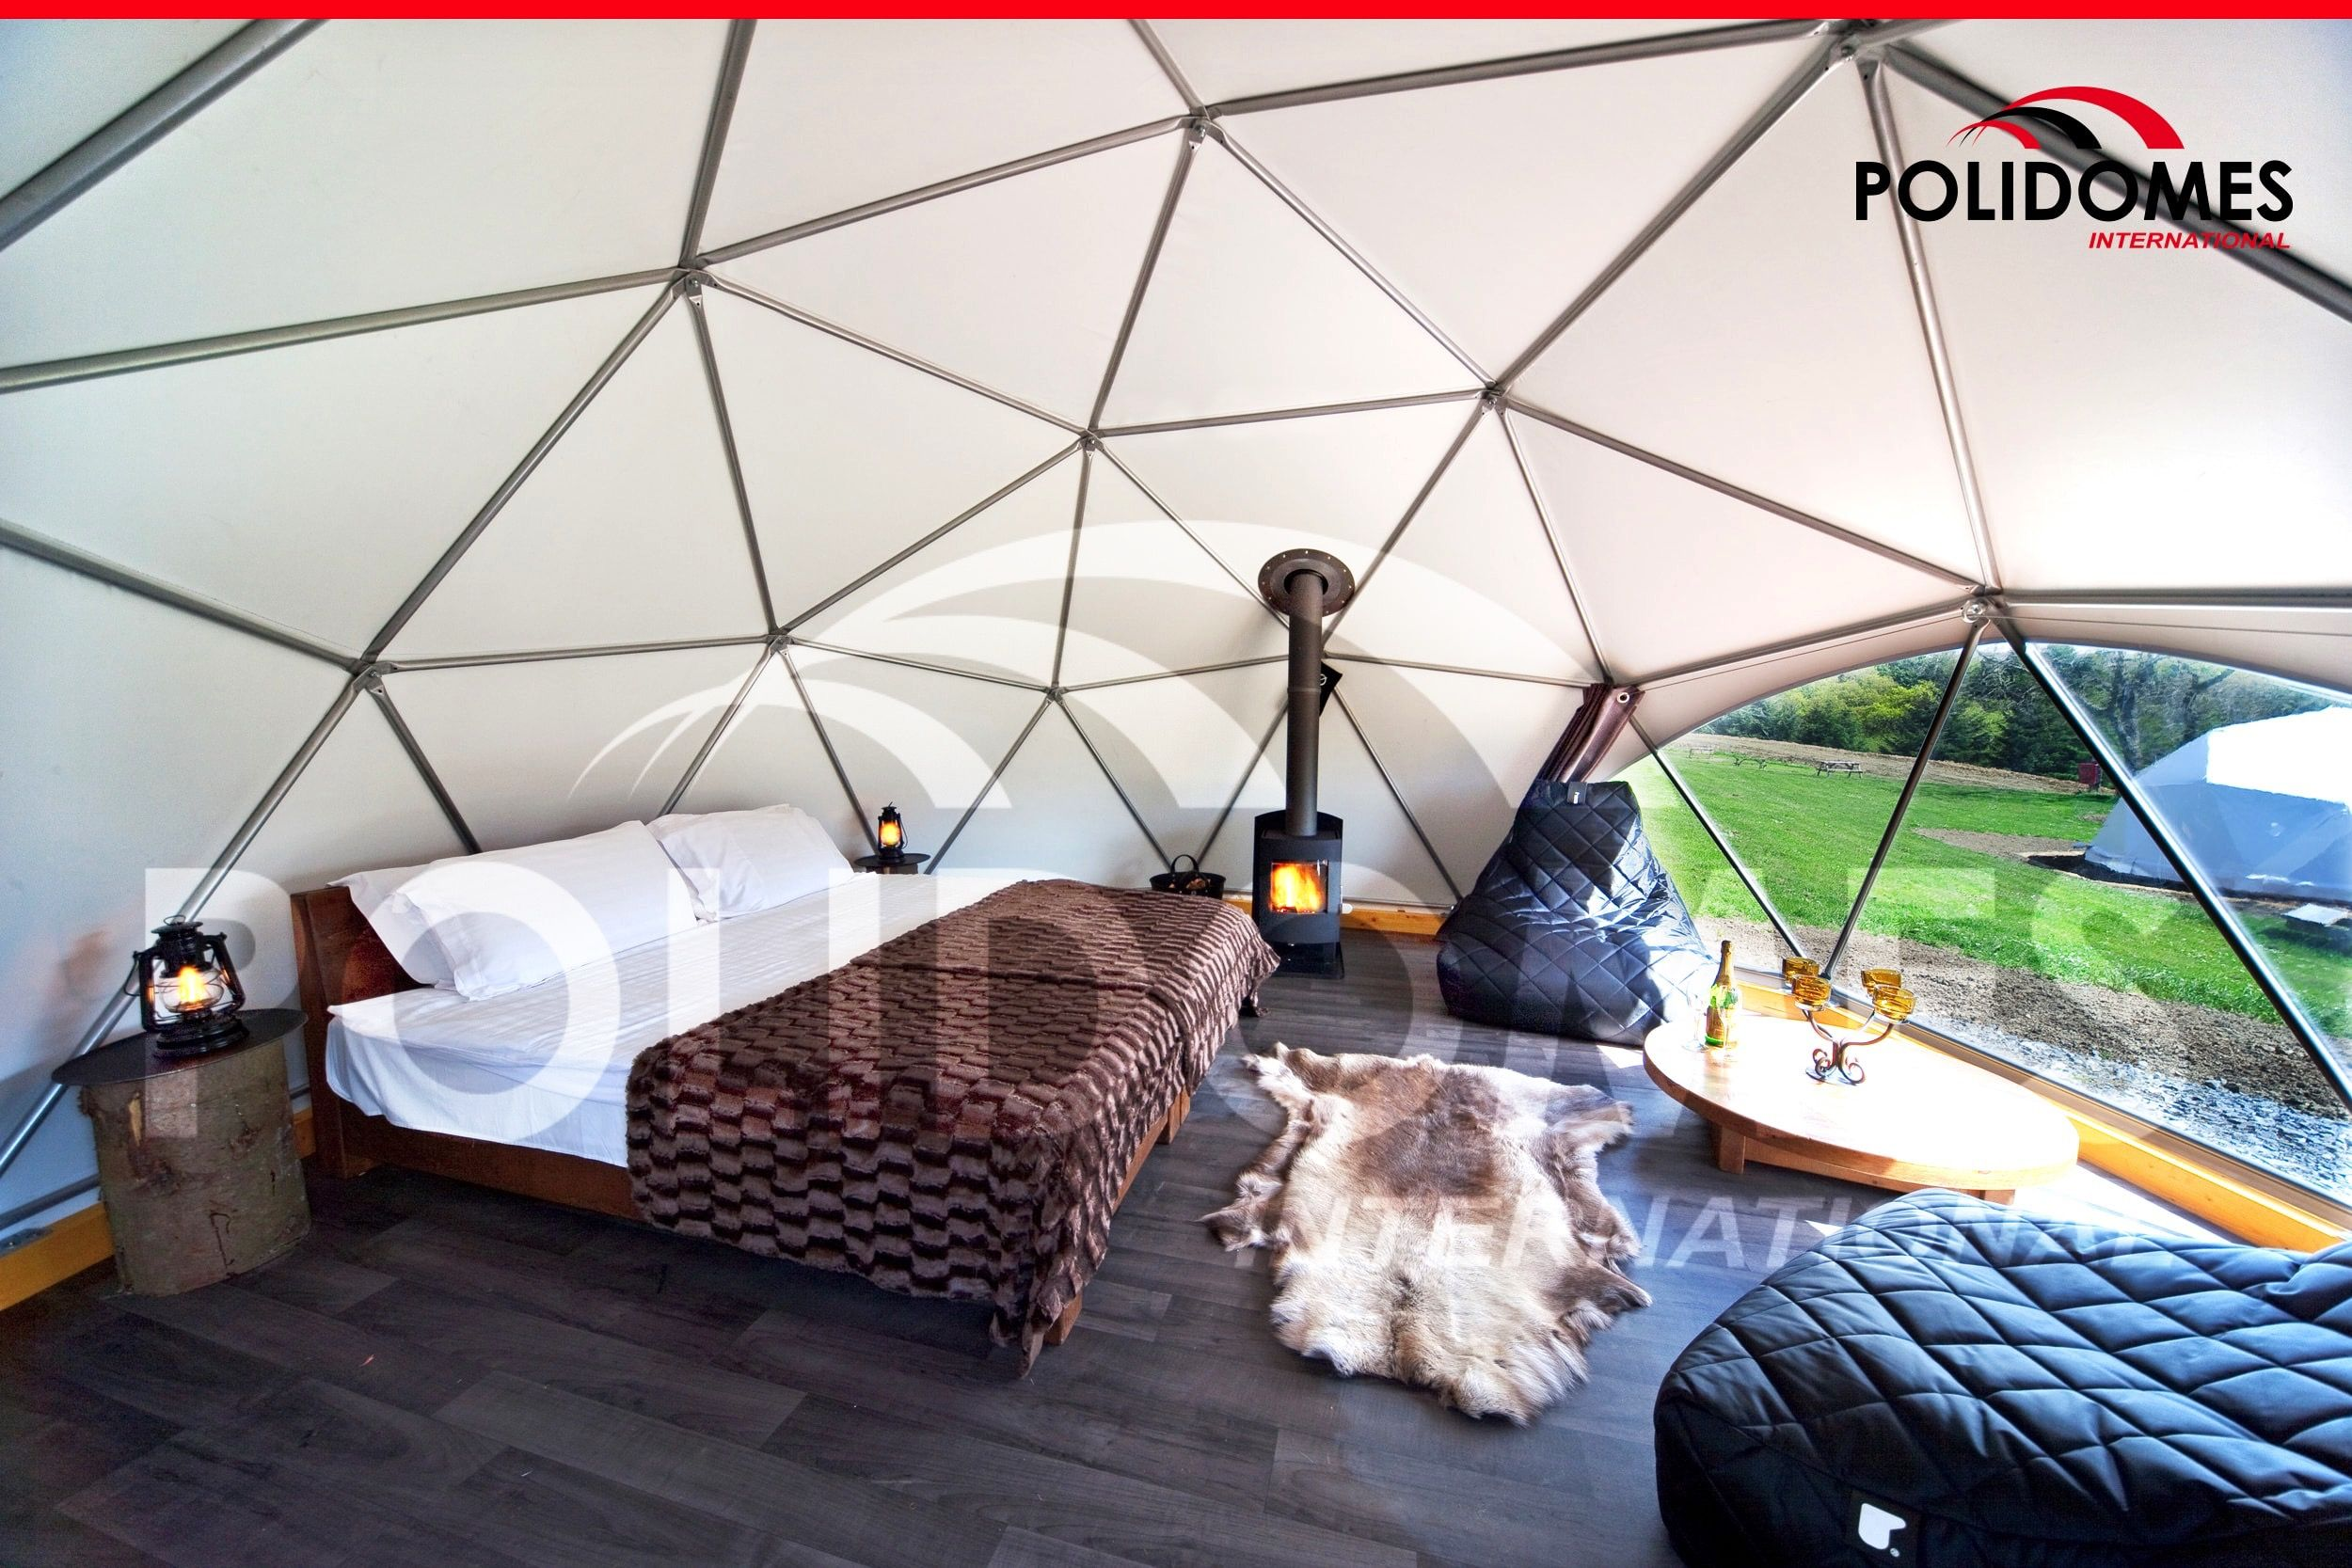 Geodesic dome tents for sale u0026 hire. Geodesic dome tents online of all sizes for any event or gl&ing. Event domes and gl&ing geodesic dome kits online. & Inside the tent is equipped with a double bed a sitting area and ...